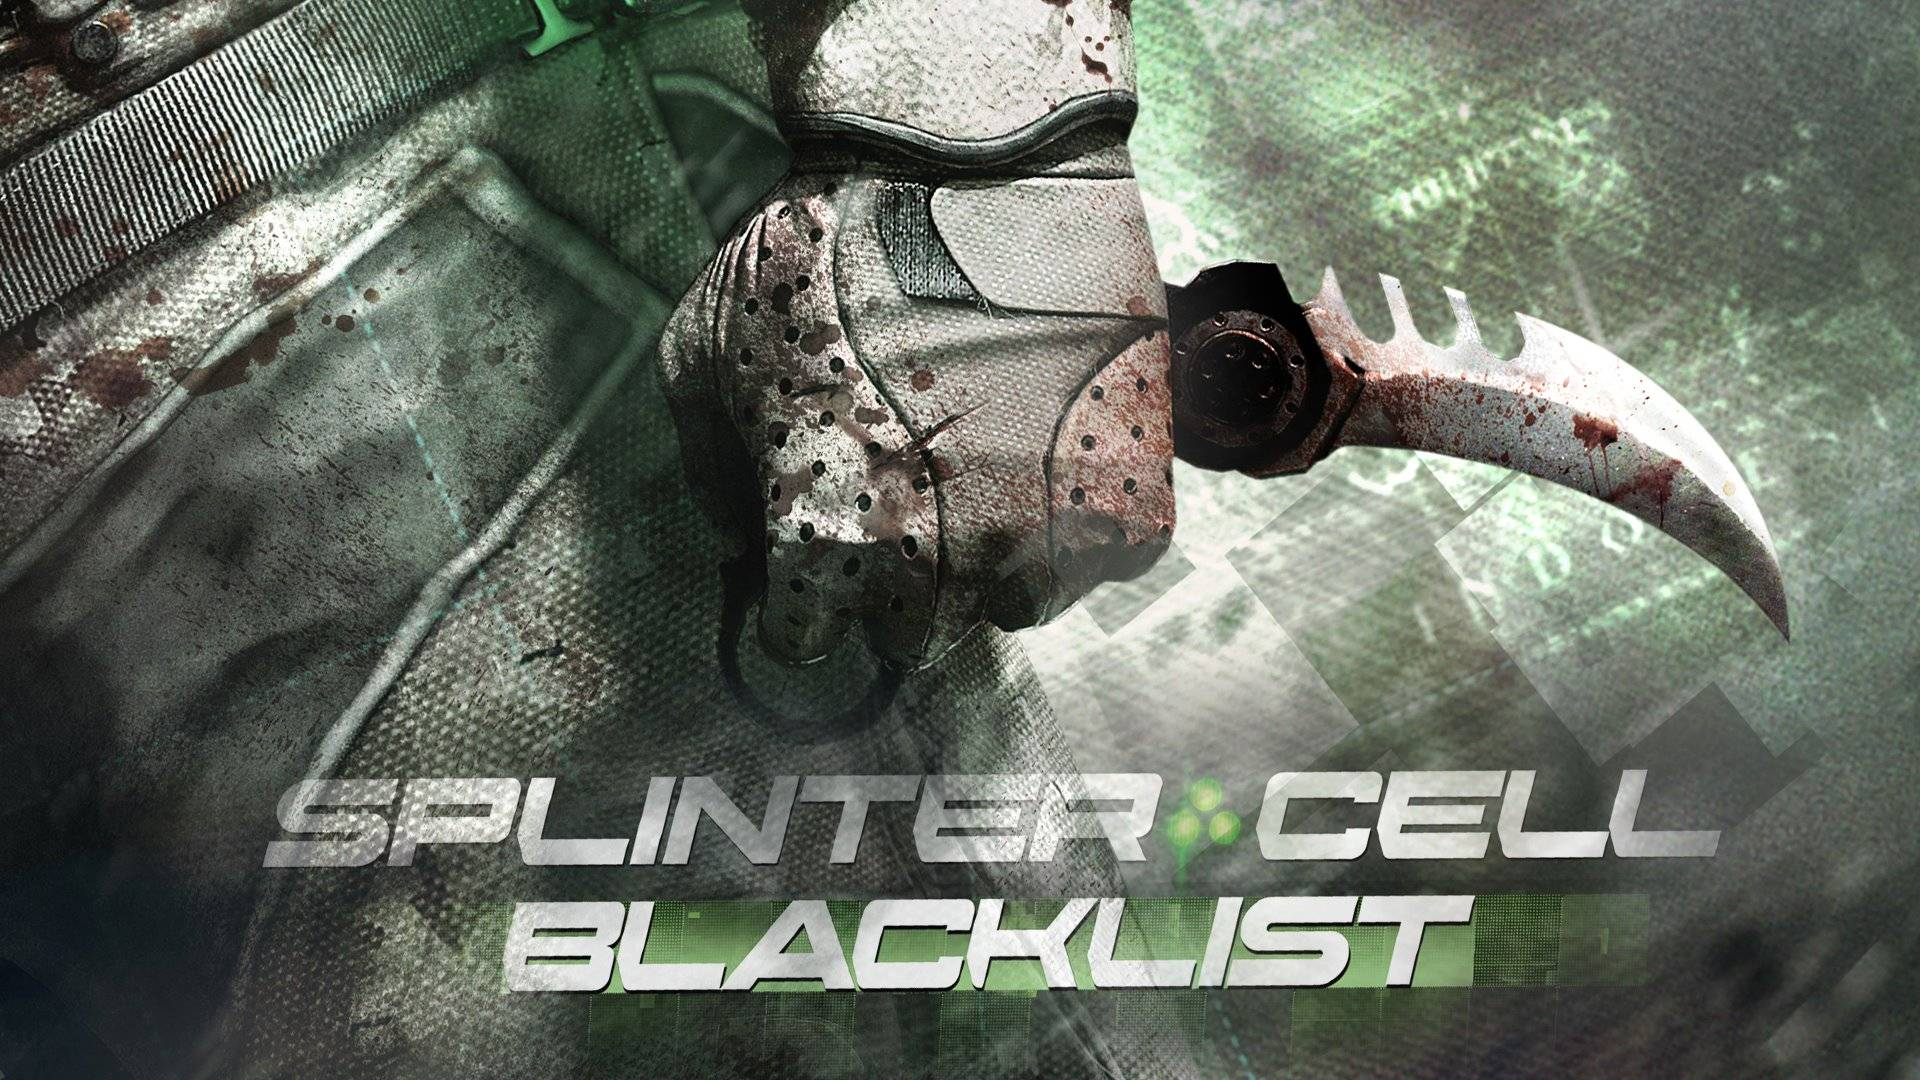 splinter-cell-blacklist-wallpaper-8